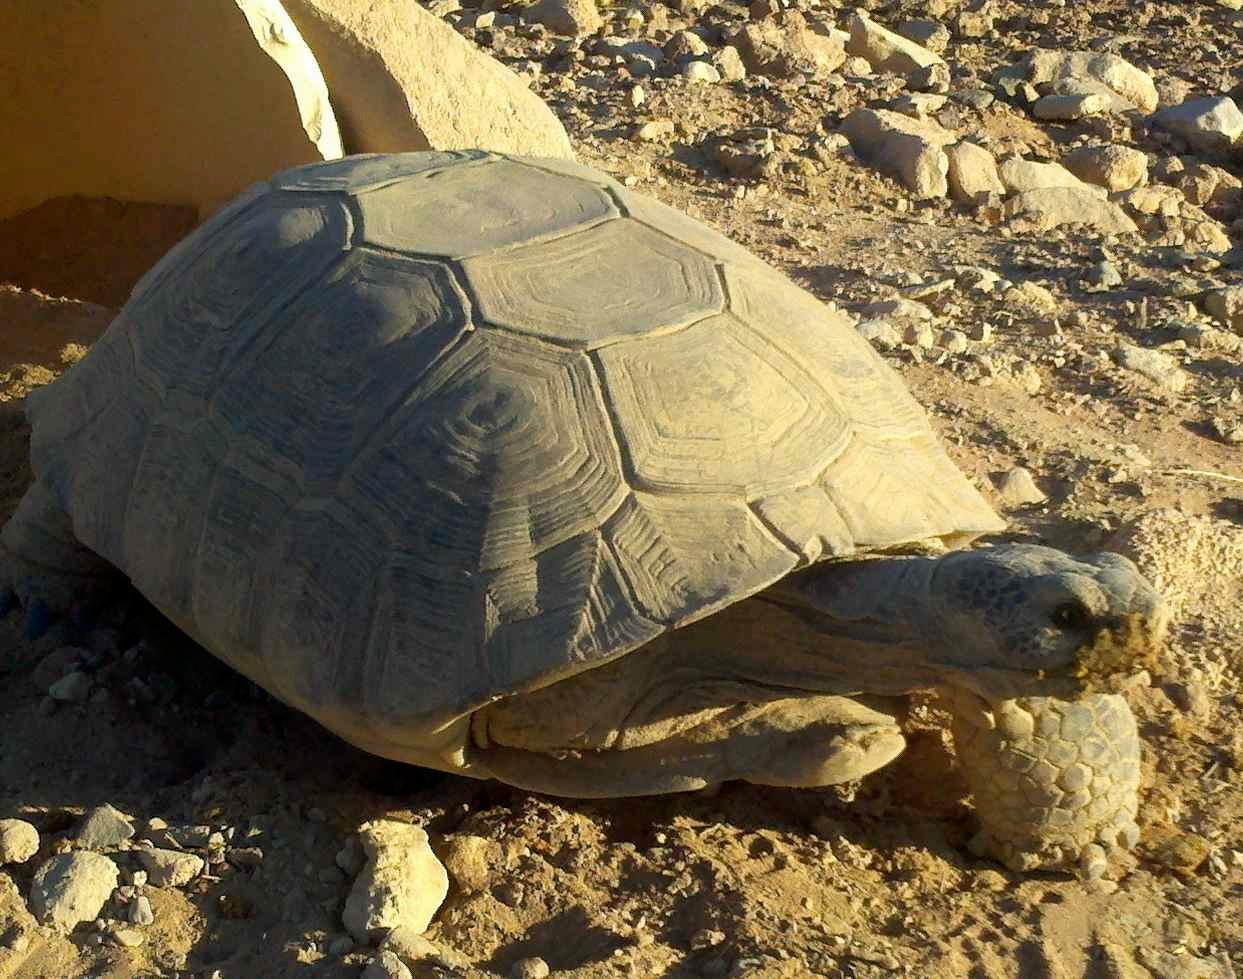 Tortoise with missing limb.